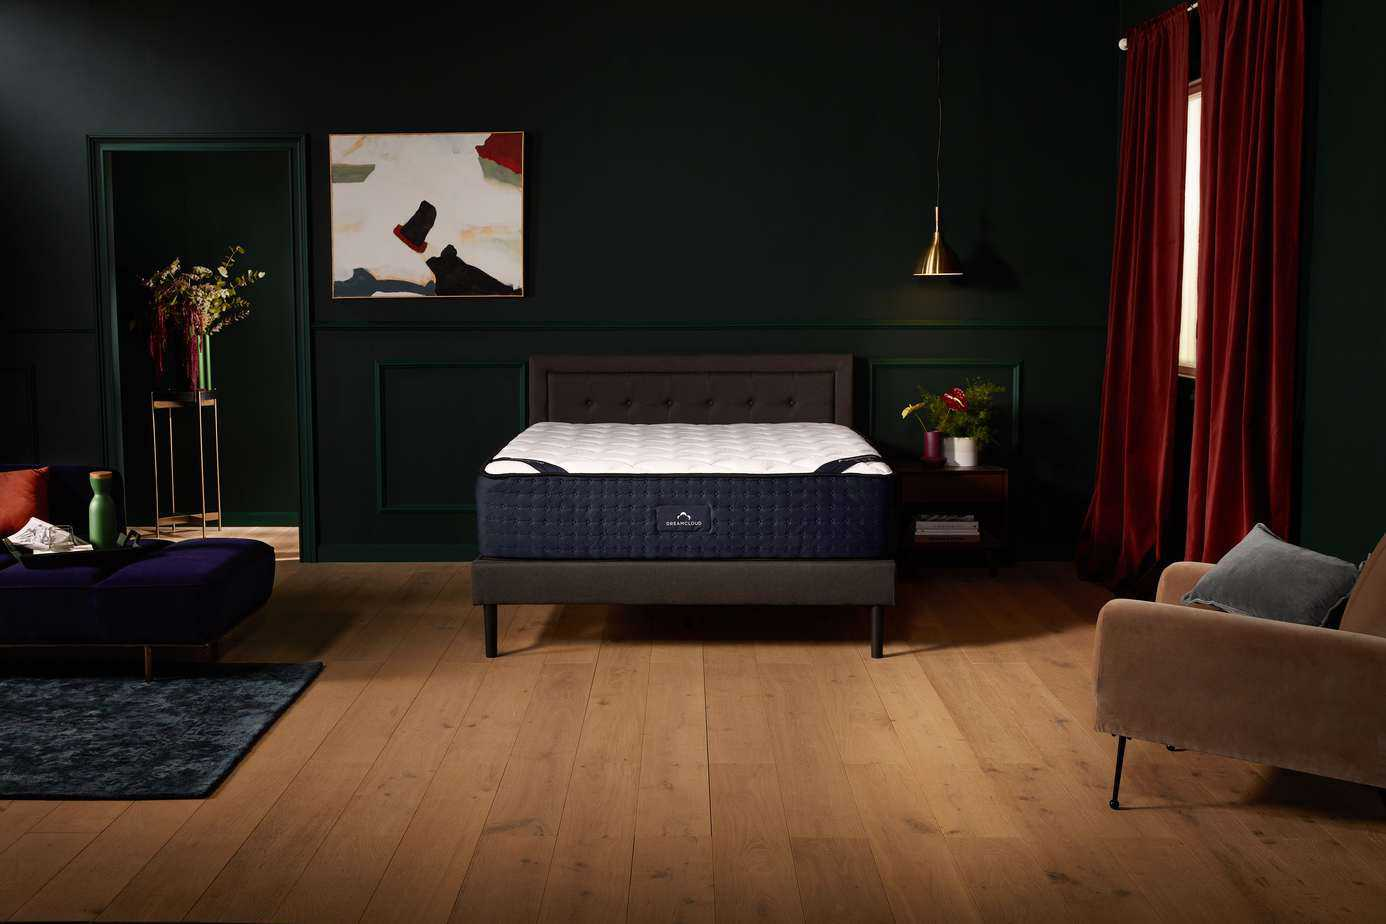 Headboard sizes chart and dimensions guide